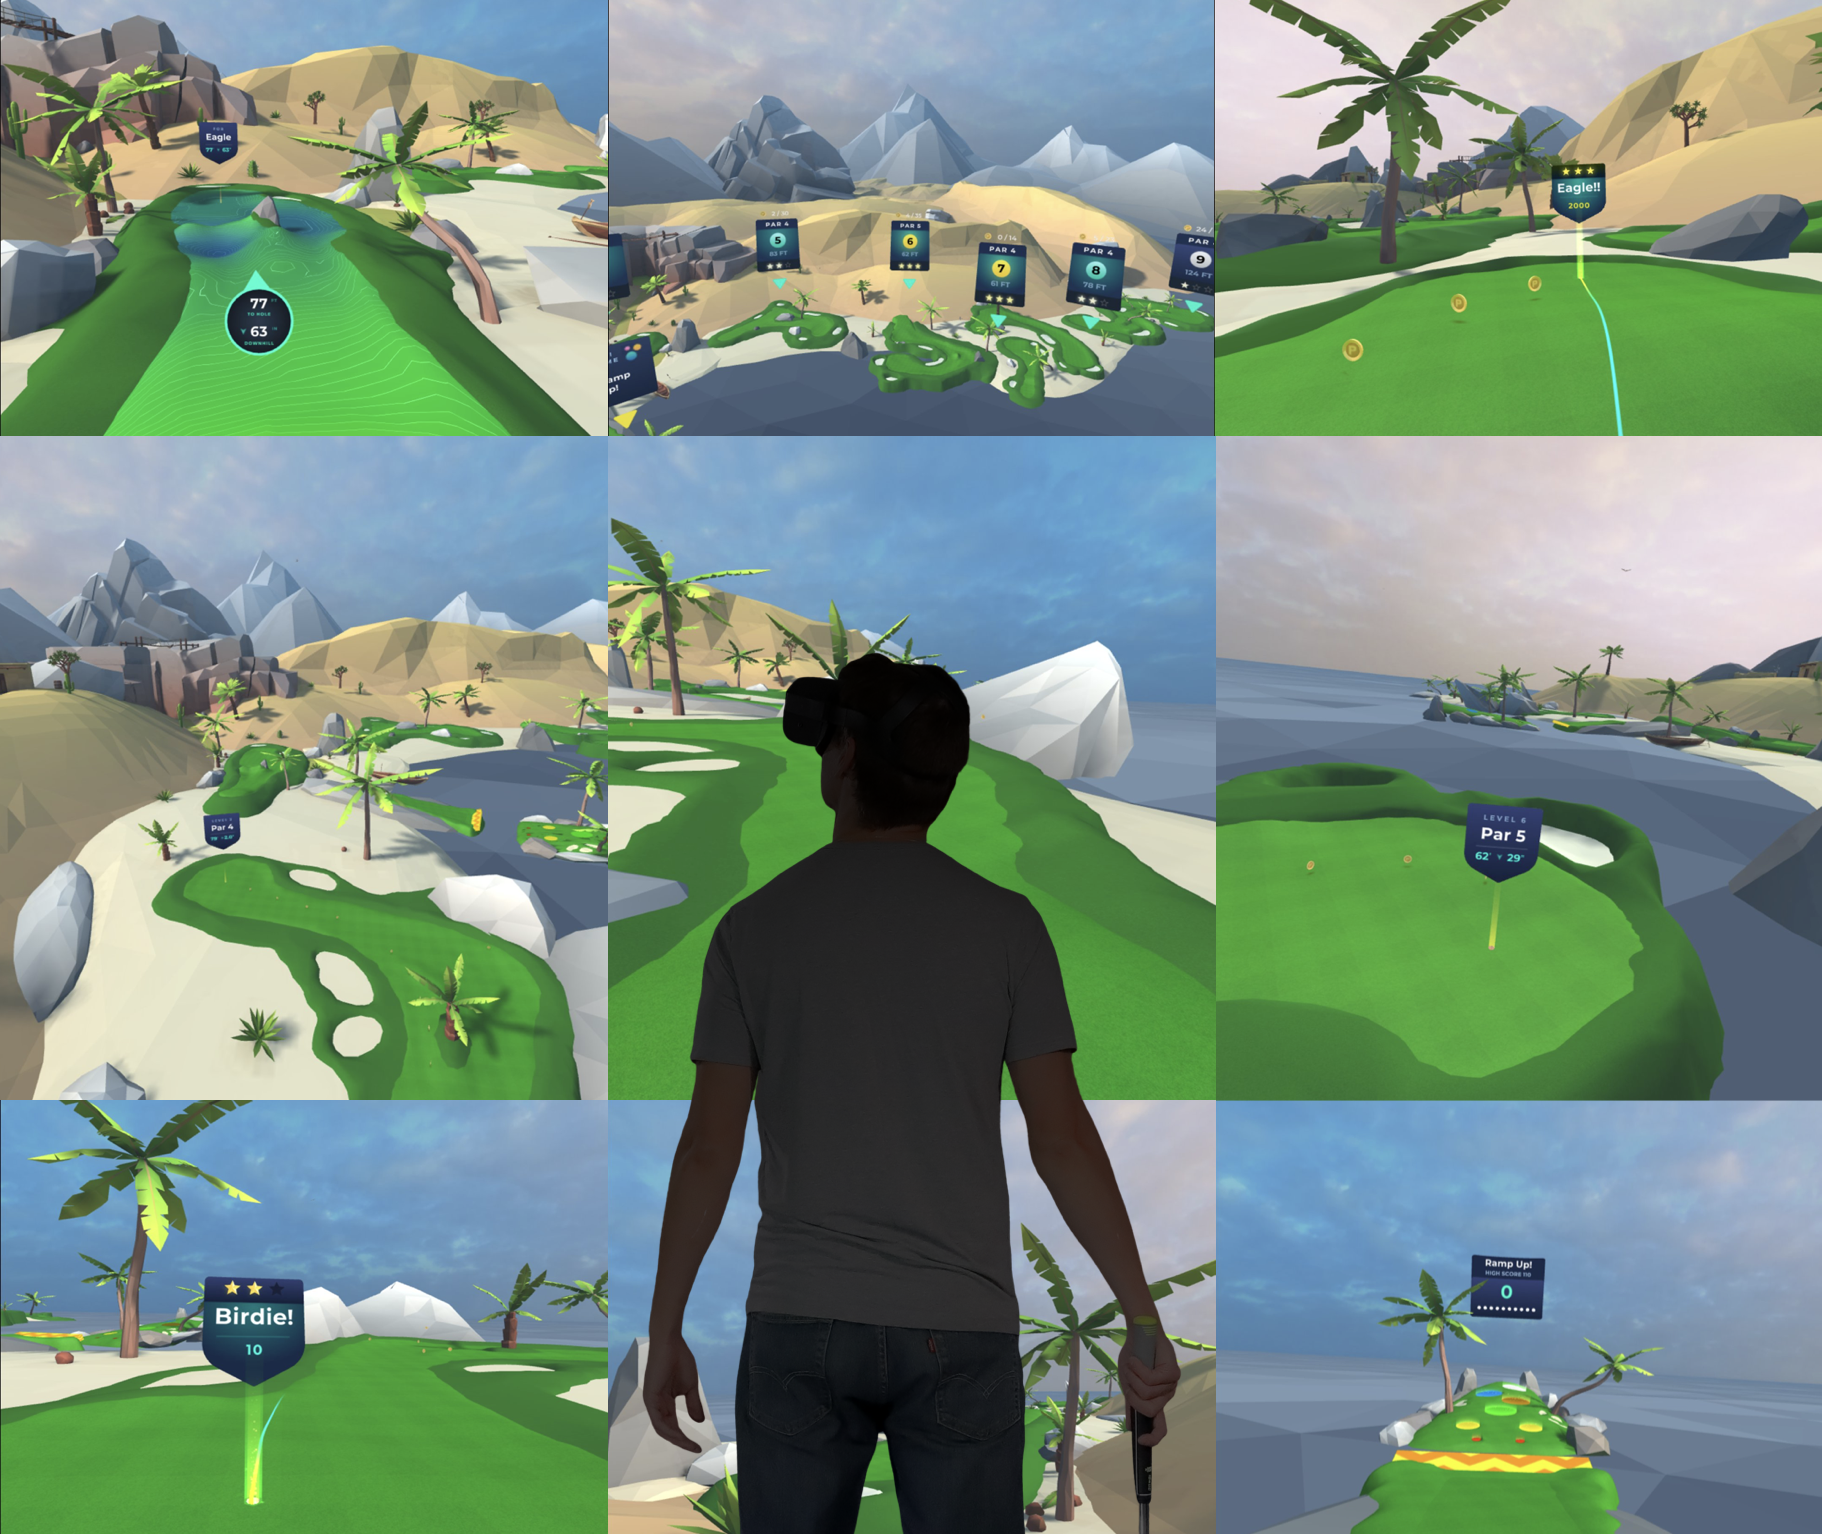 Beta Features 9 Levels of Putting Challenges on the beach plus a mini-game.